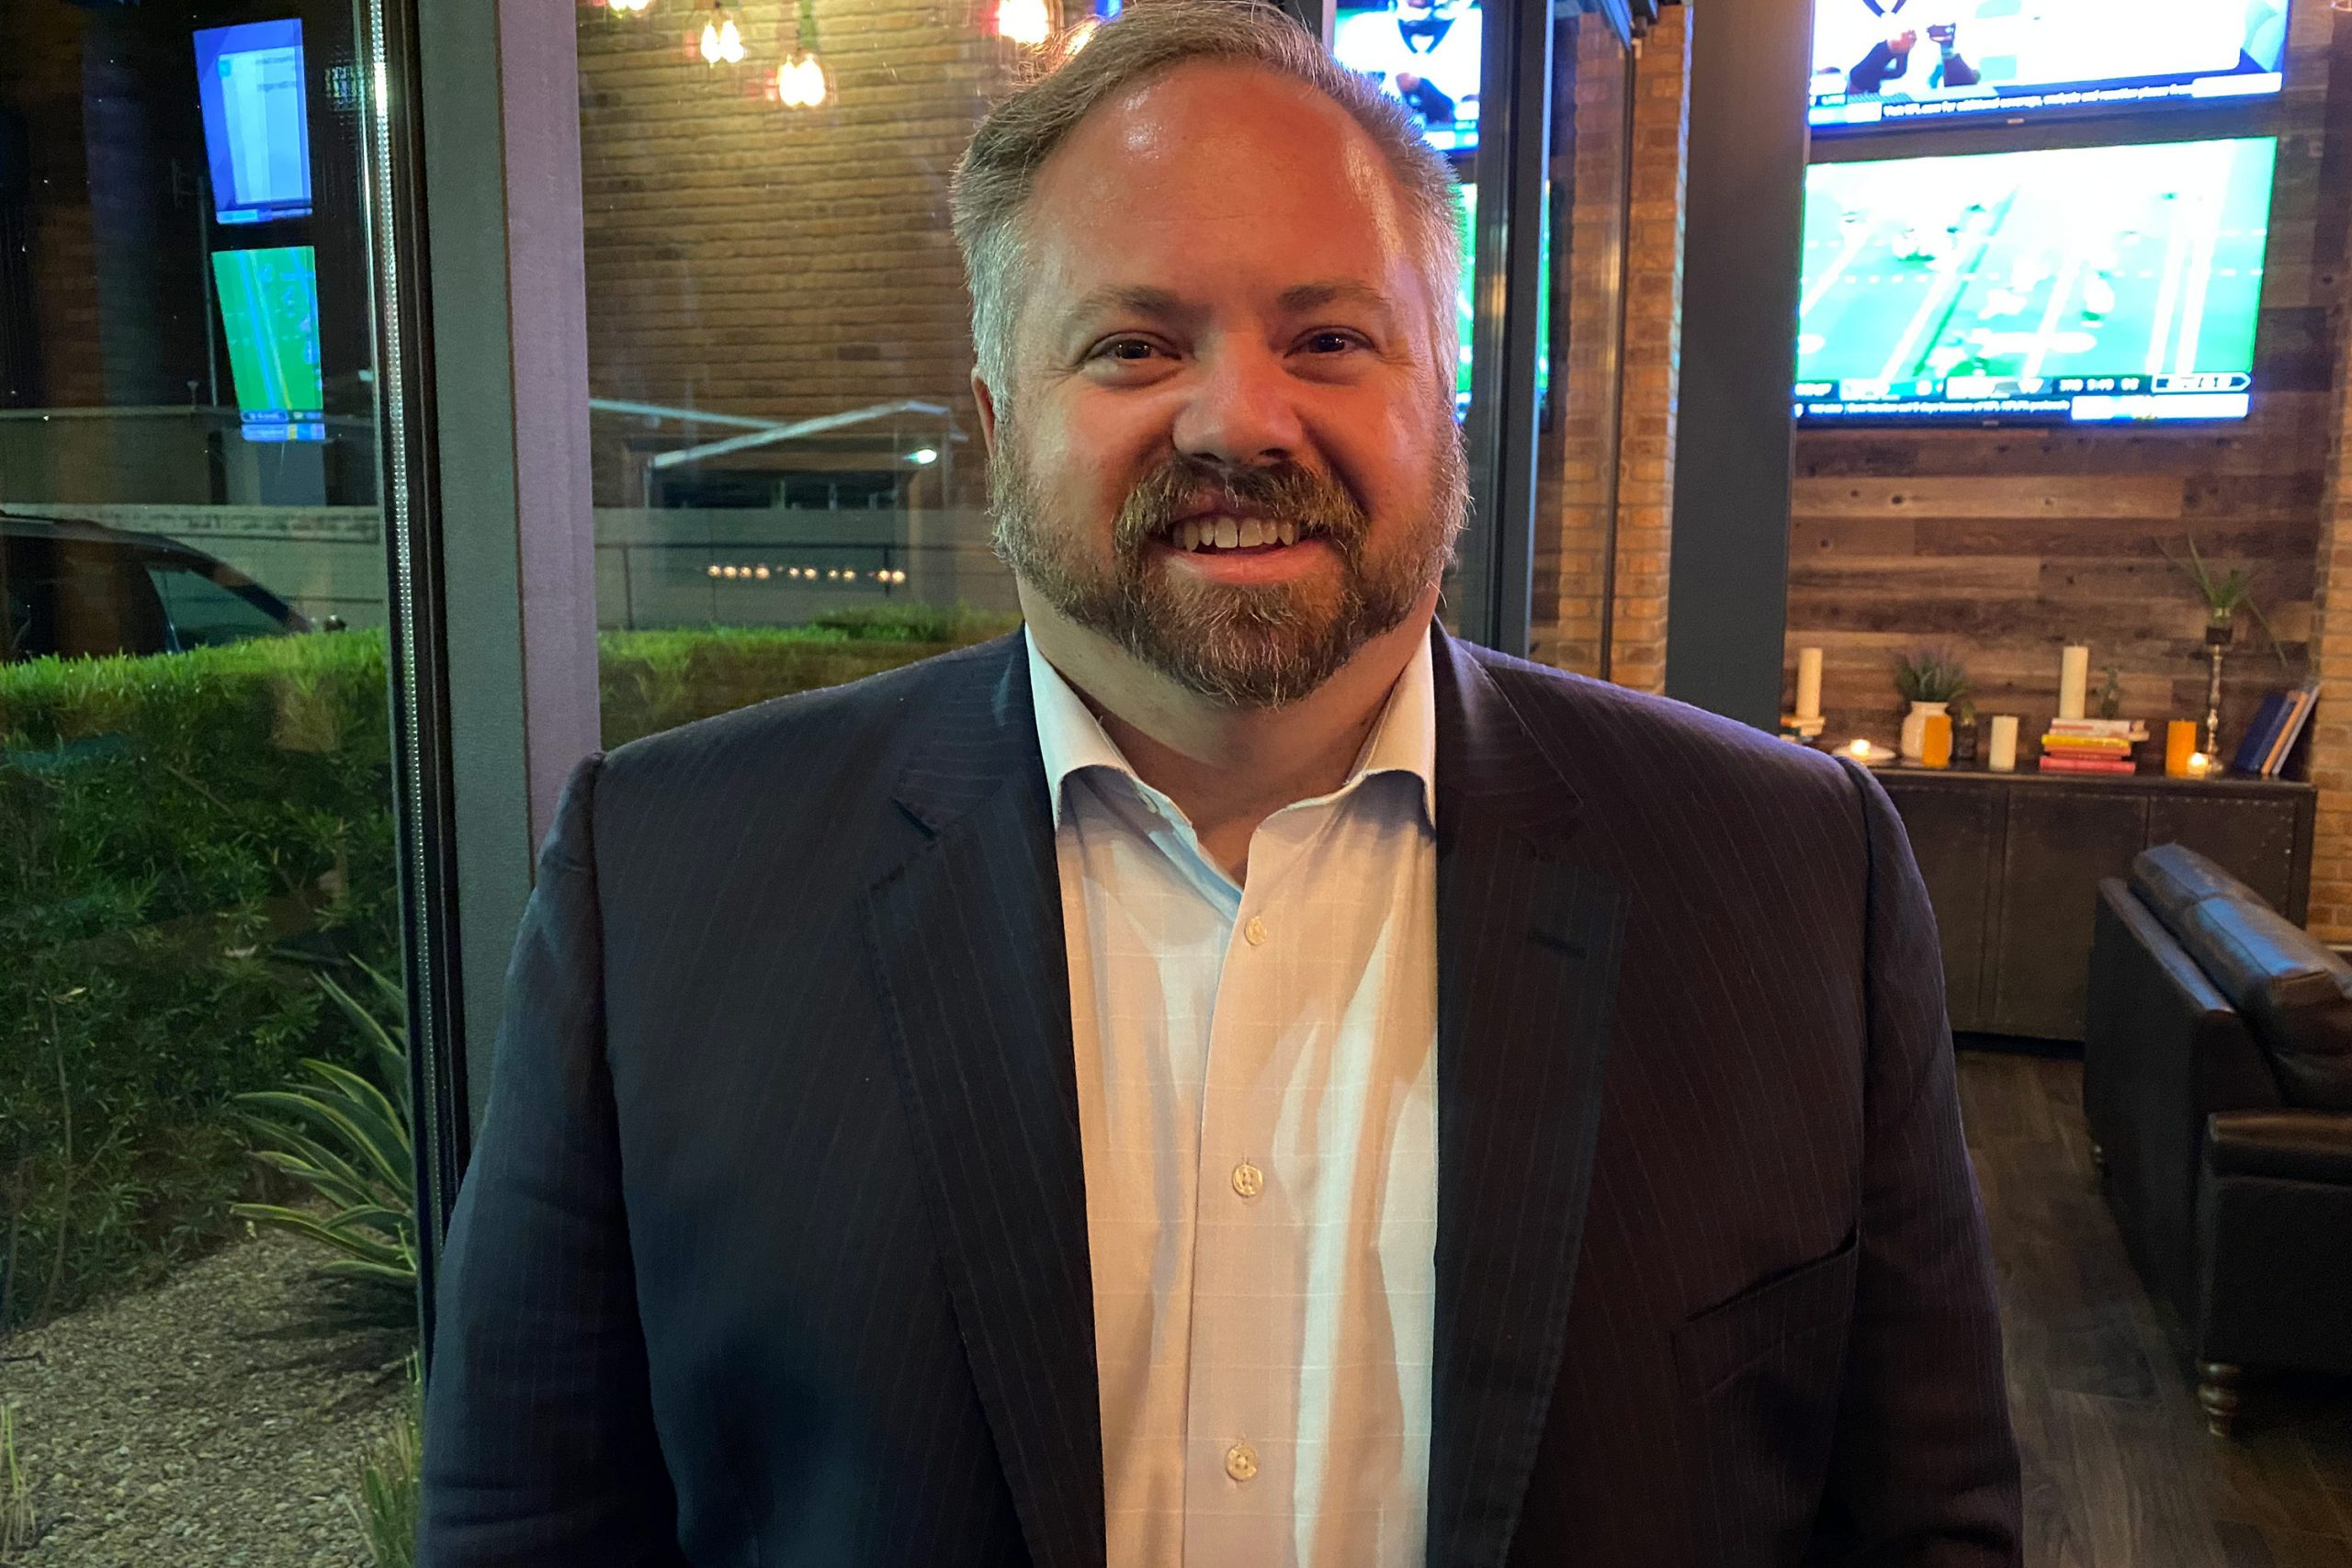 Grant Tondro, Vice President of Brewery Operations & Productions